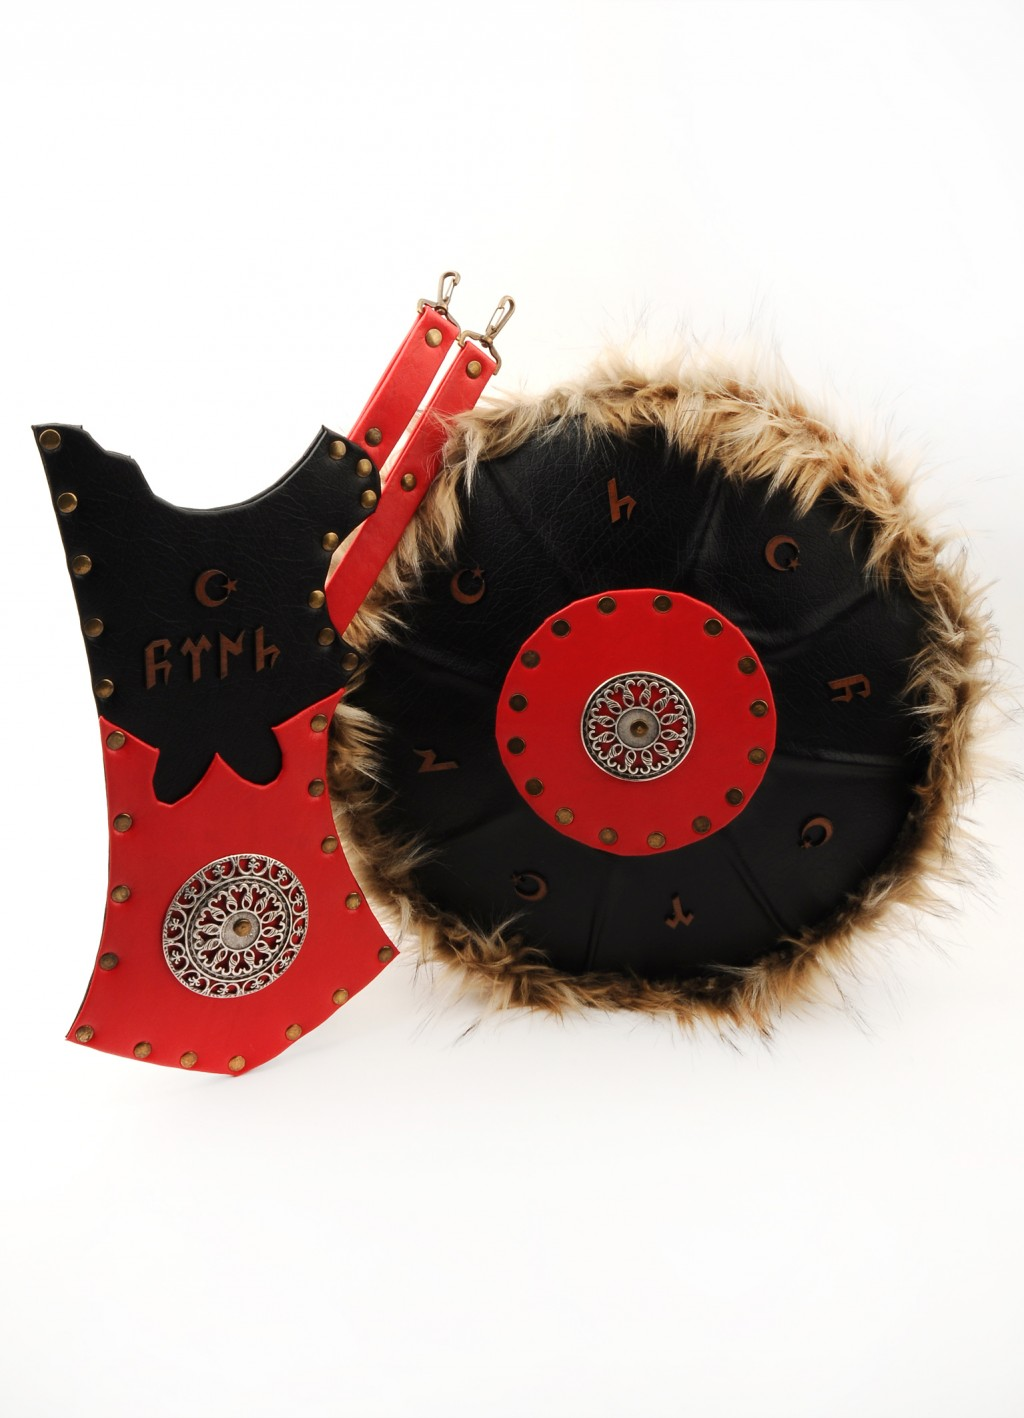 archer quiver and shield red